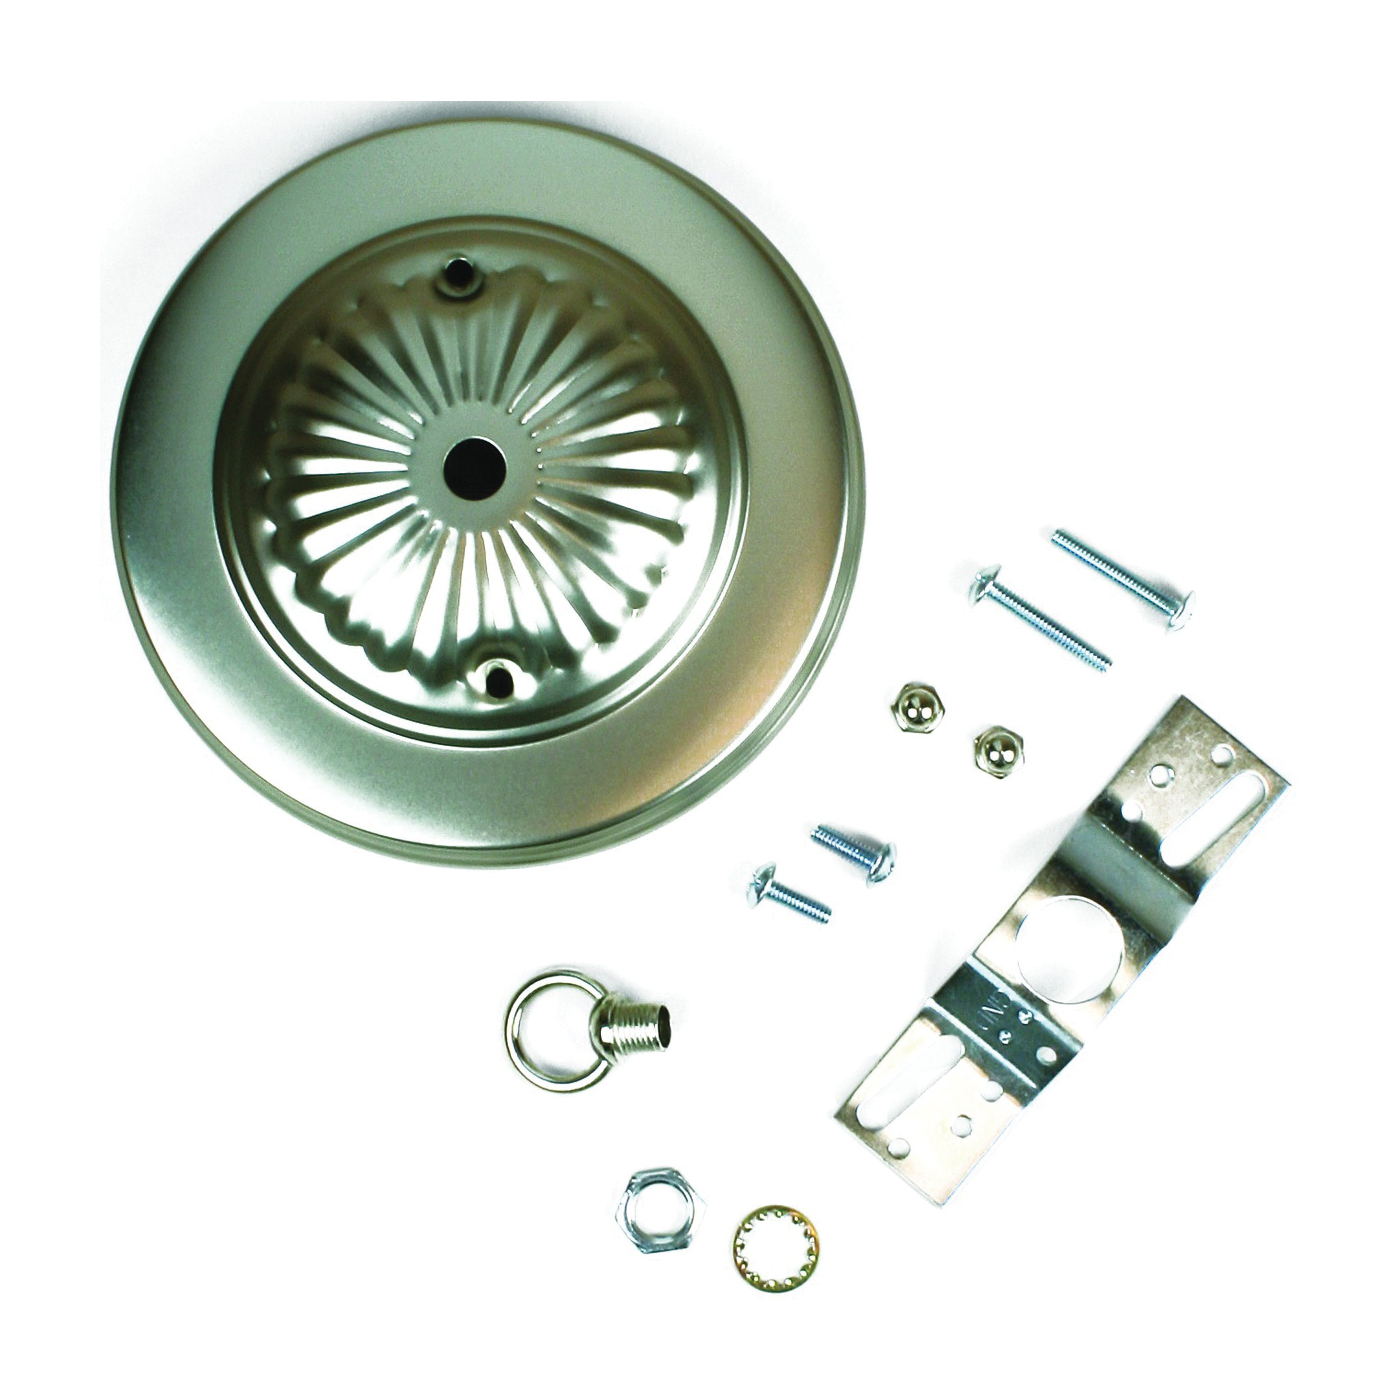 Picture of Jandorf 60216 Canopy Kit, Ceiling, Traditional, Brushed Pewter, For: Outlet Box and Hang Ceiling Fixture